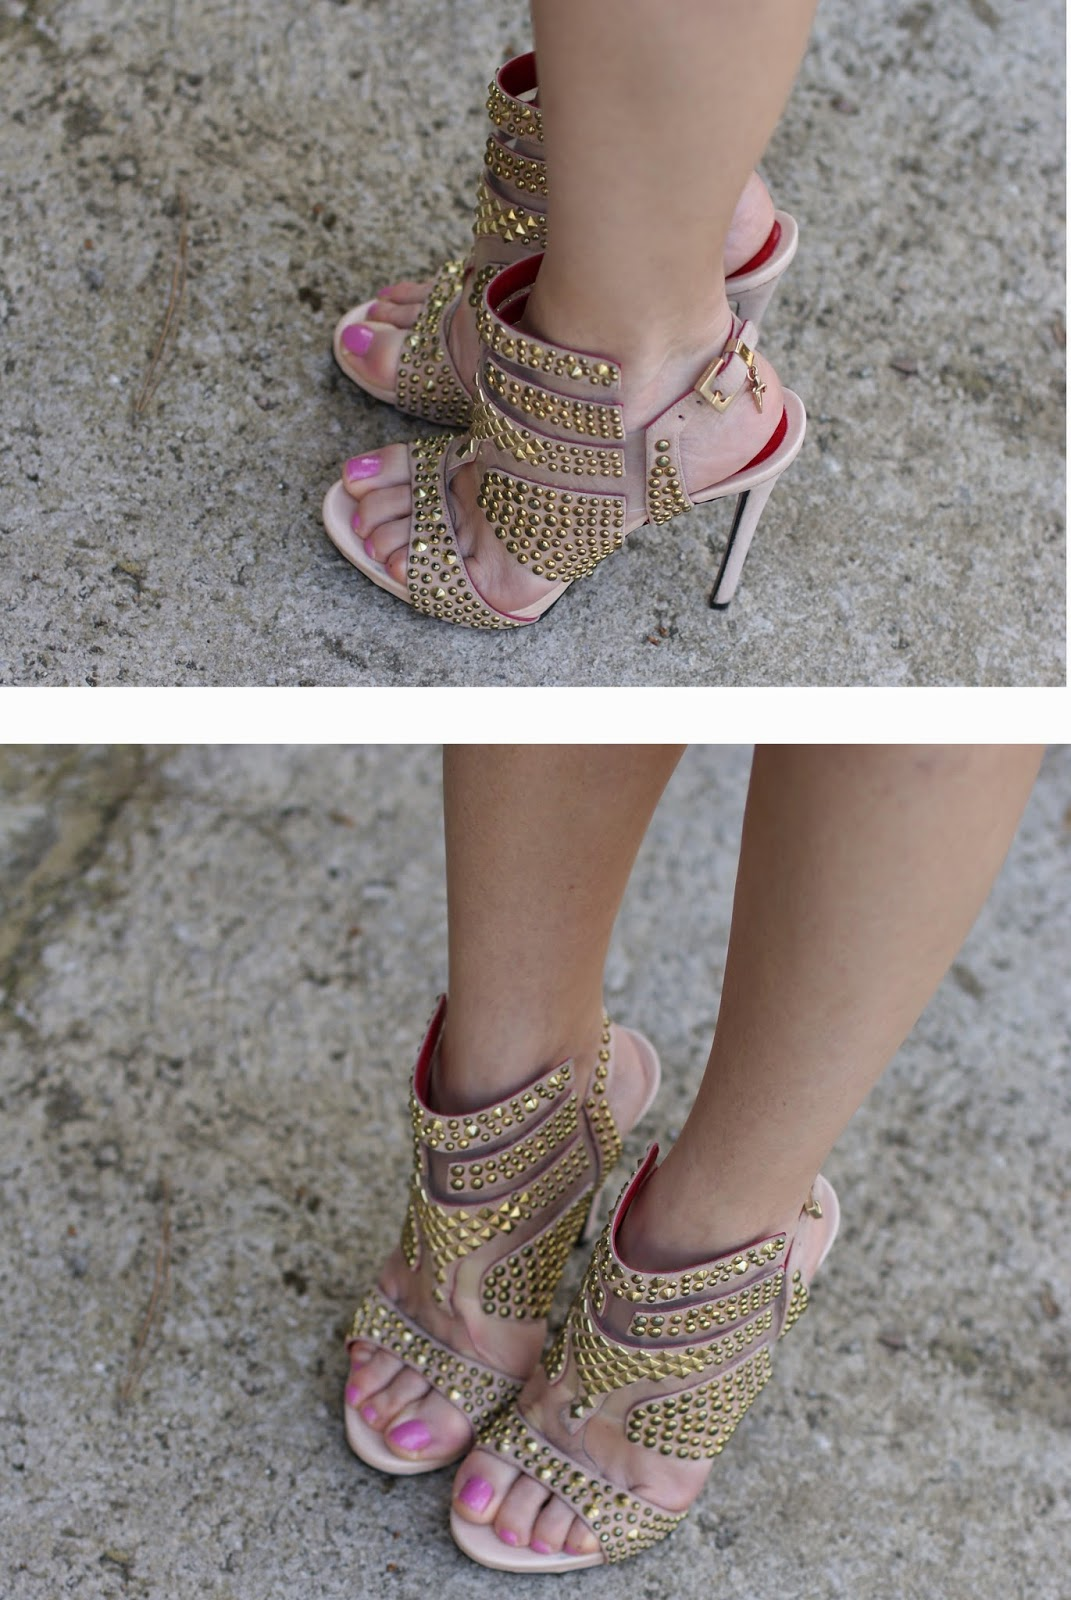 Cesare Paciotti sandals, nude studded heels, Fashion and Cookies, fashion blogger